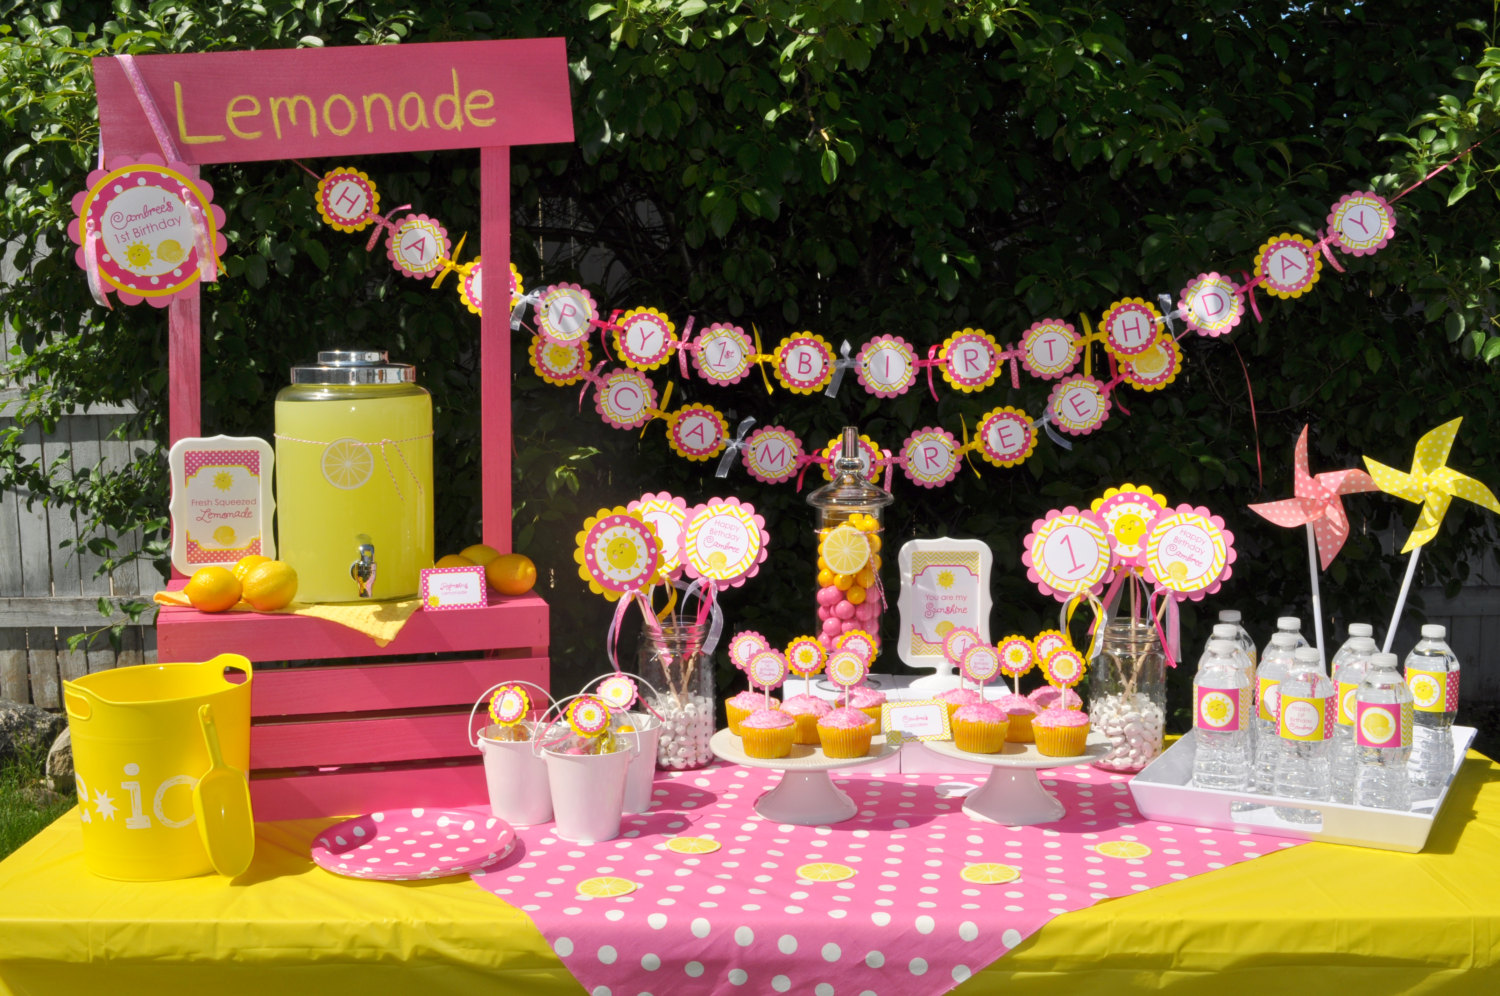 Lemonade And Sunshine Birthday 4x6 Signs You Are My Sunshine Pink Lemonade Birthday Party Decorations 2 4x6 Printed Signs